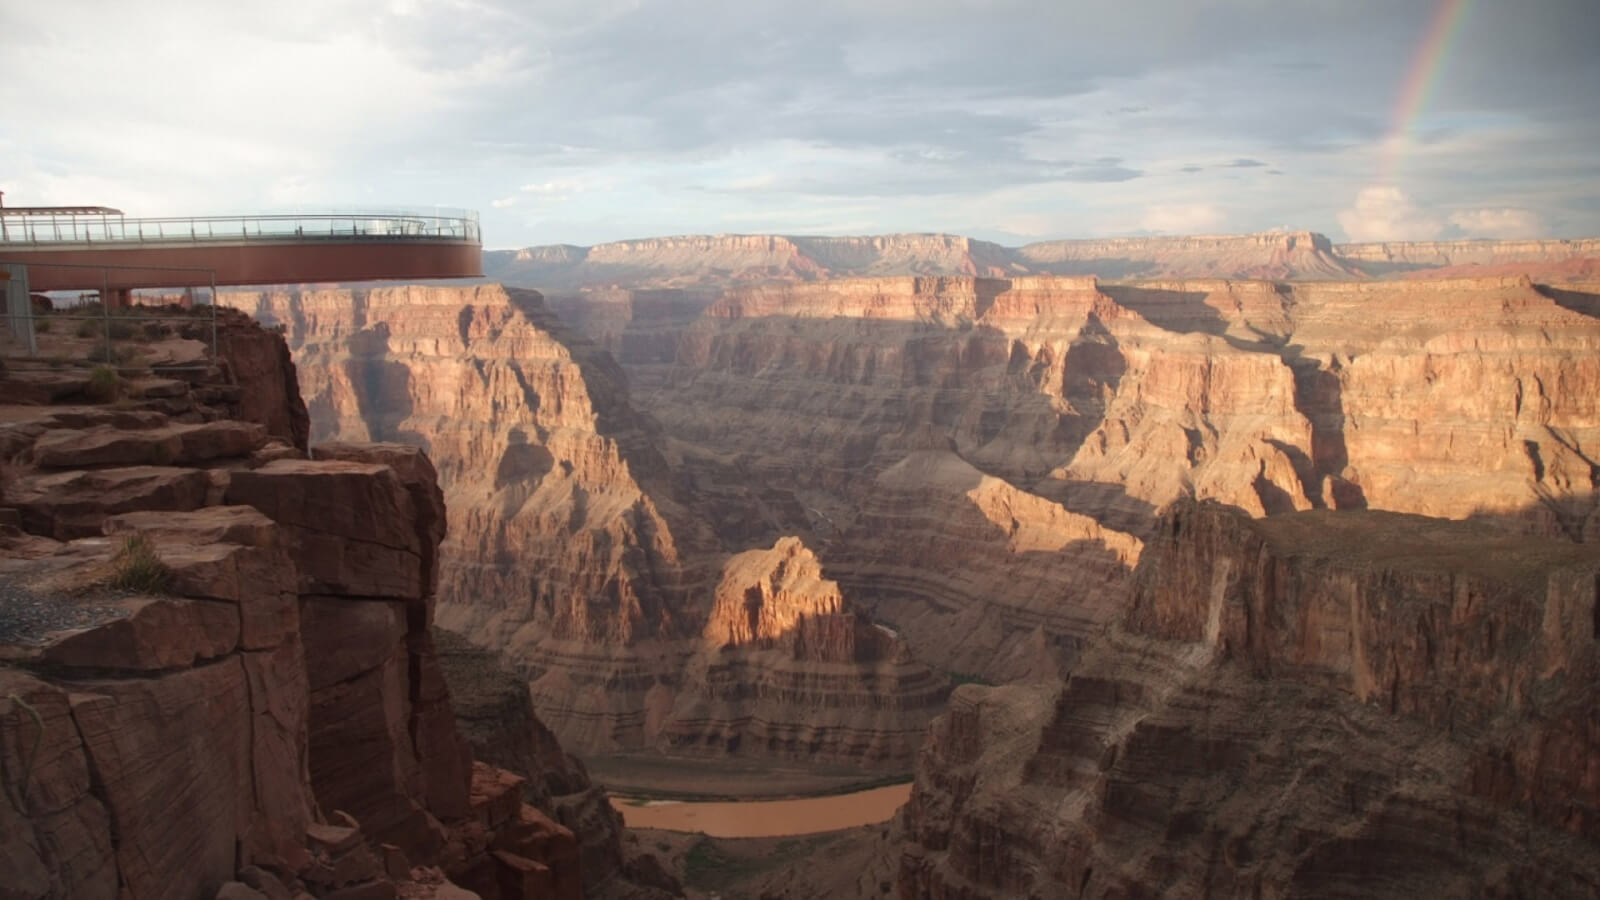 The Skywalk at Grand Canyon West juts out over the canyon with a rainbow in the distance.